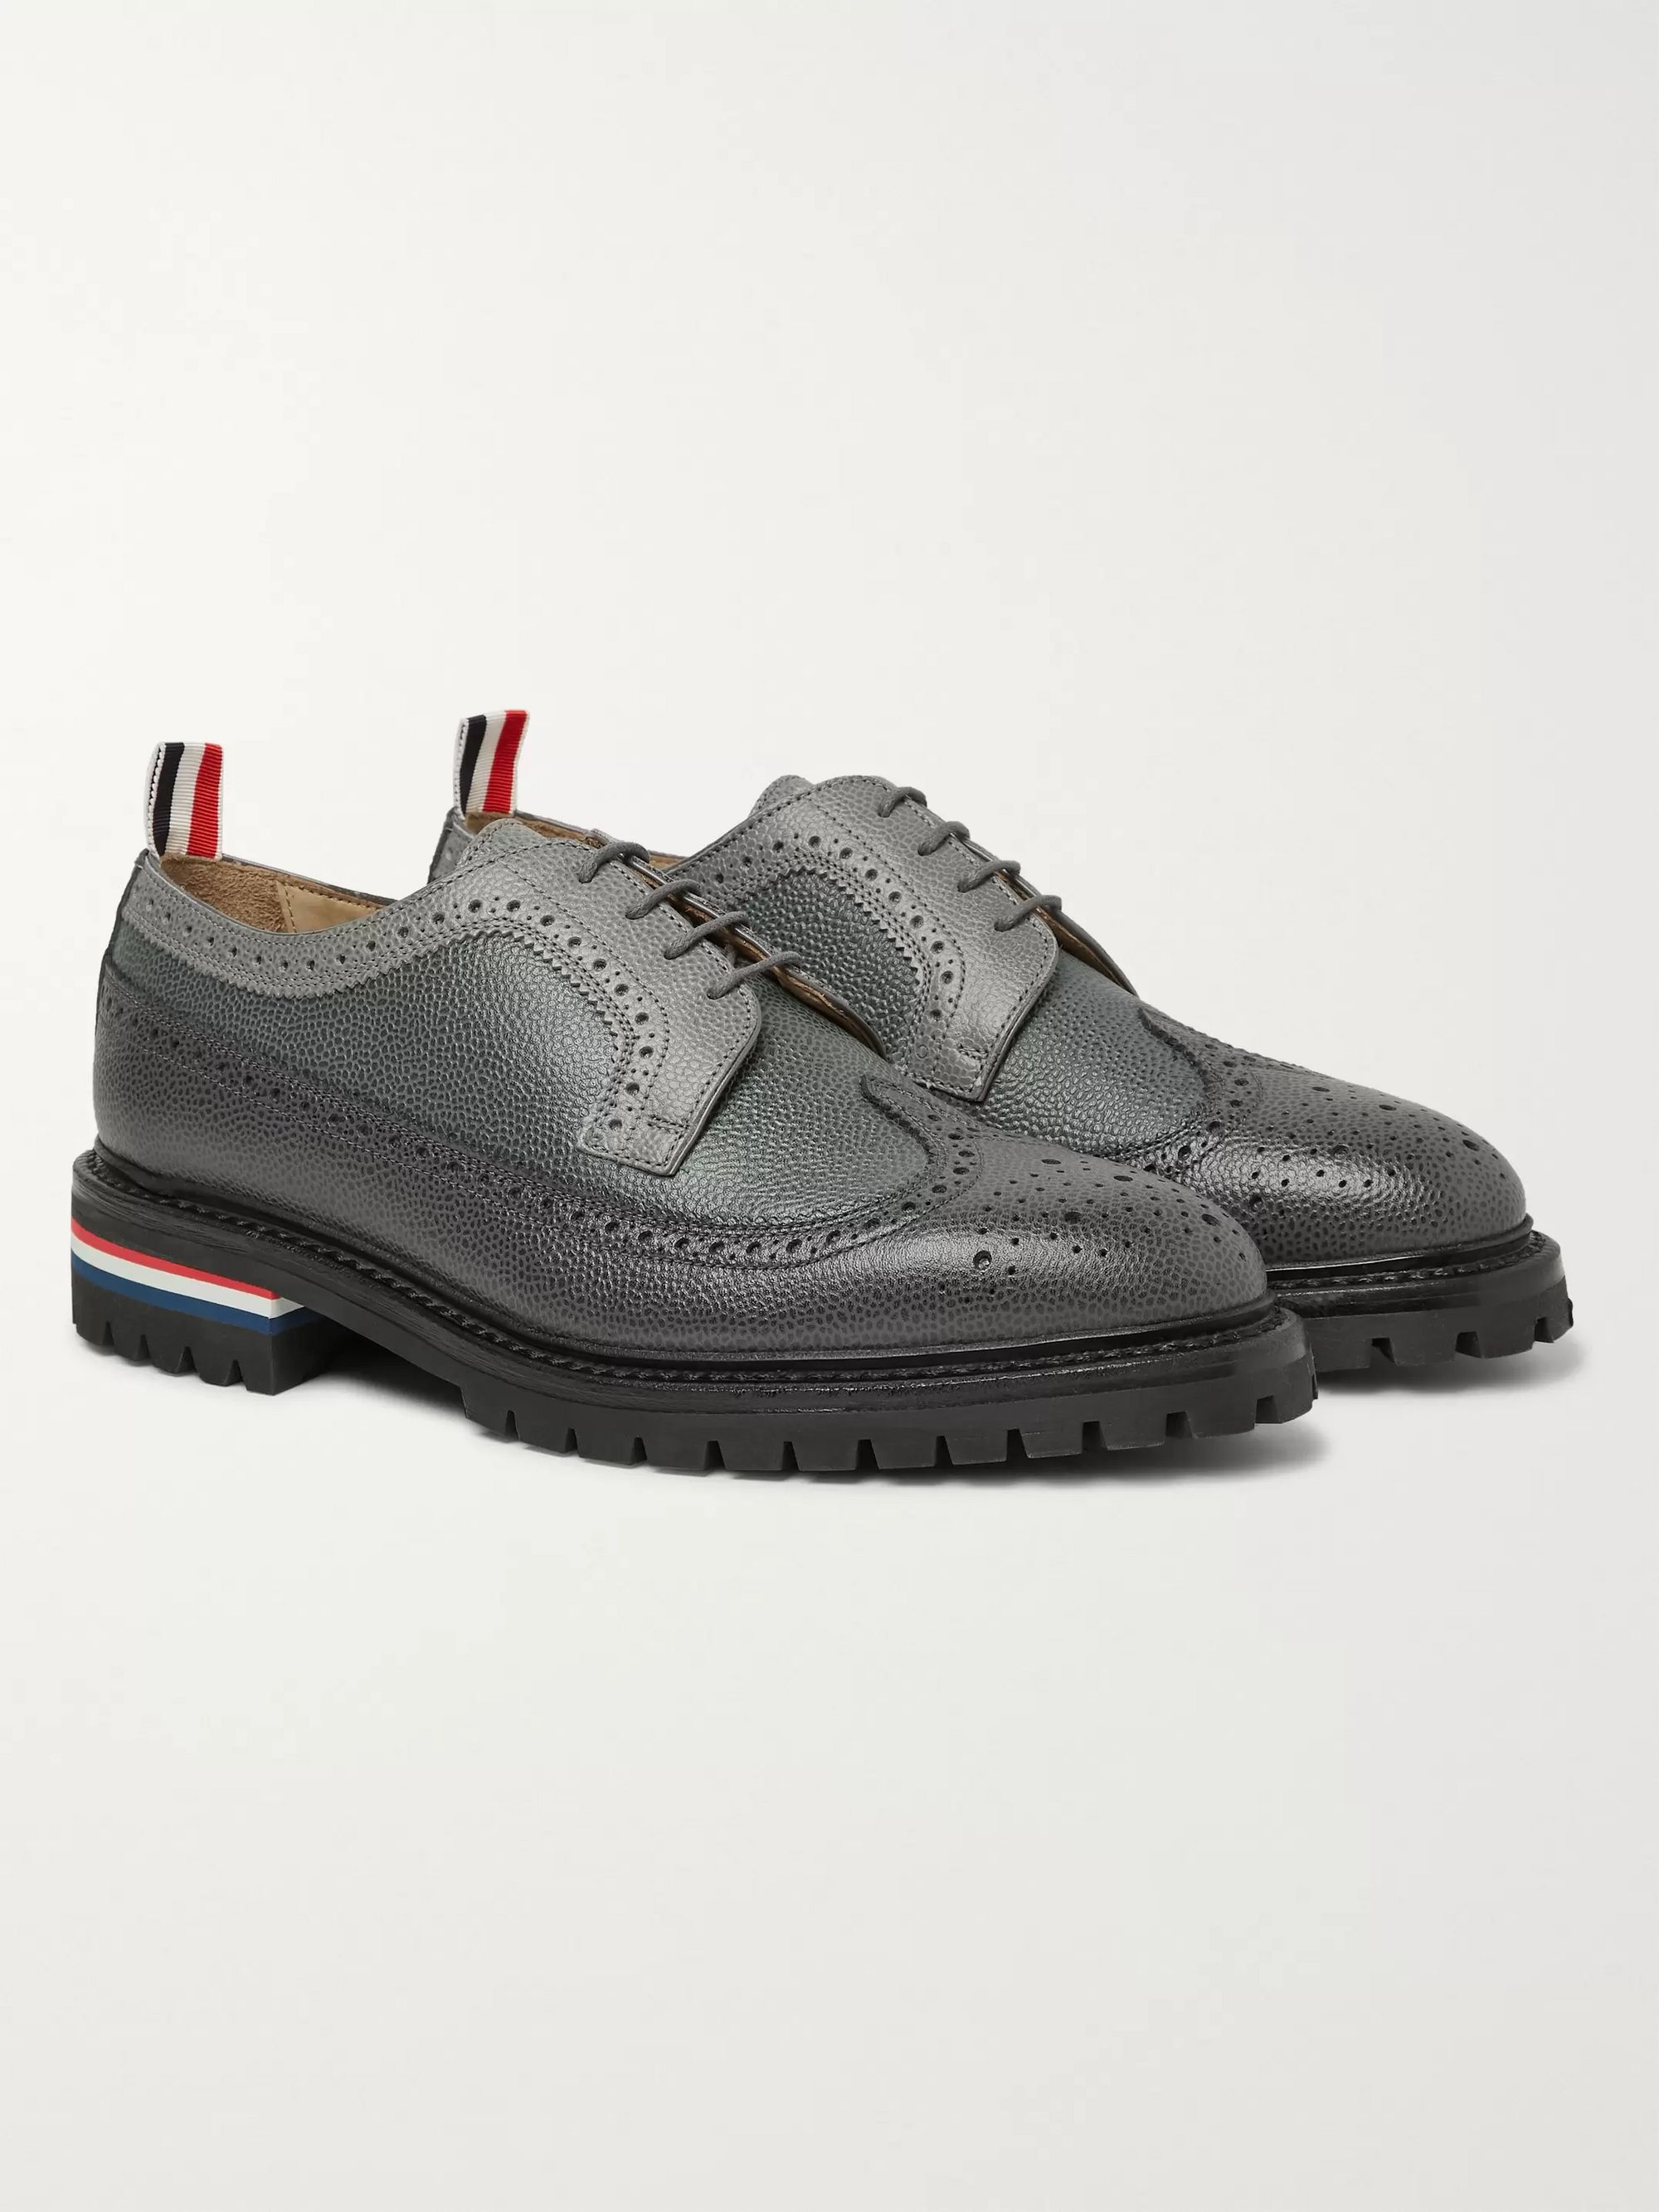 Thom Browne Panelled Pebble-Grain Leather Longwing Brogues